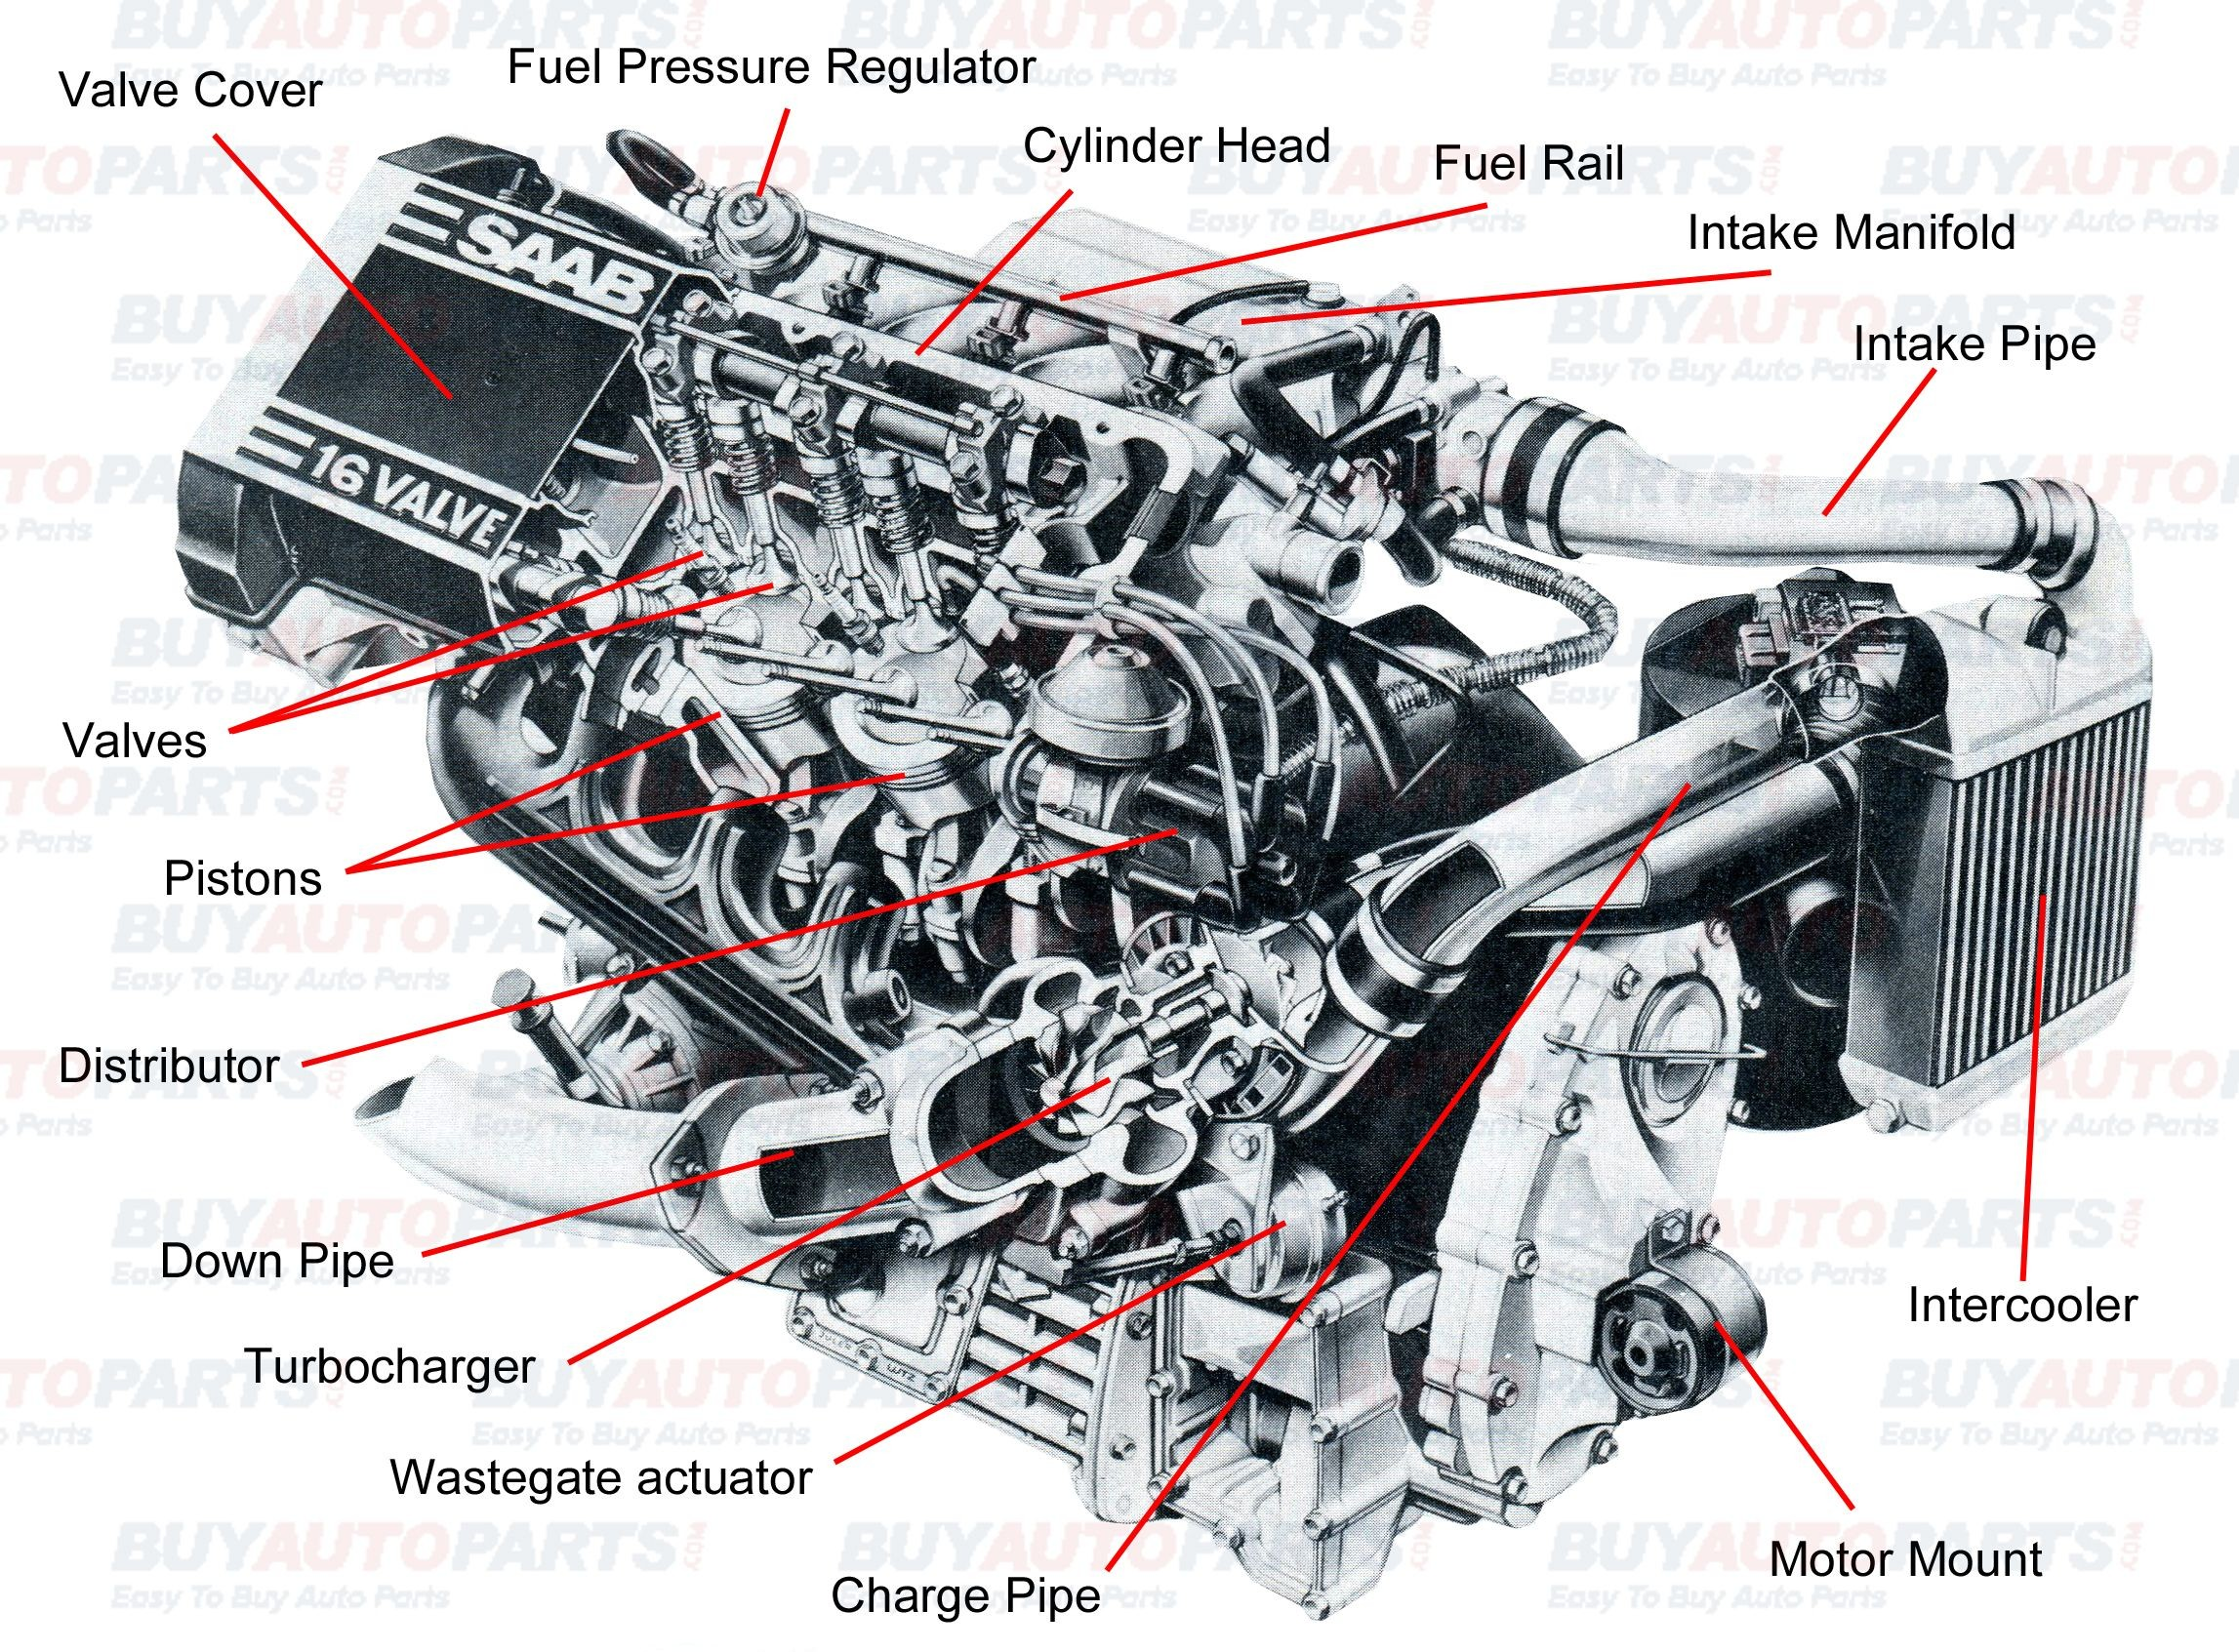 Parts Of Car Engine Diagram Pin by Jimmiejanet Testellamwfz On What Does An Engine with Turbo Of Parts Of Car Engine Diagram Automobile Safety